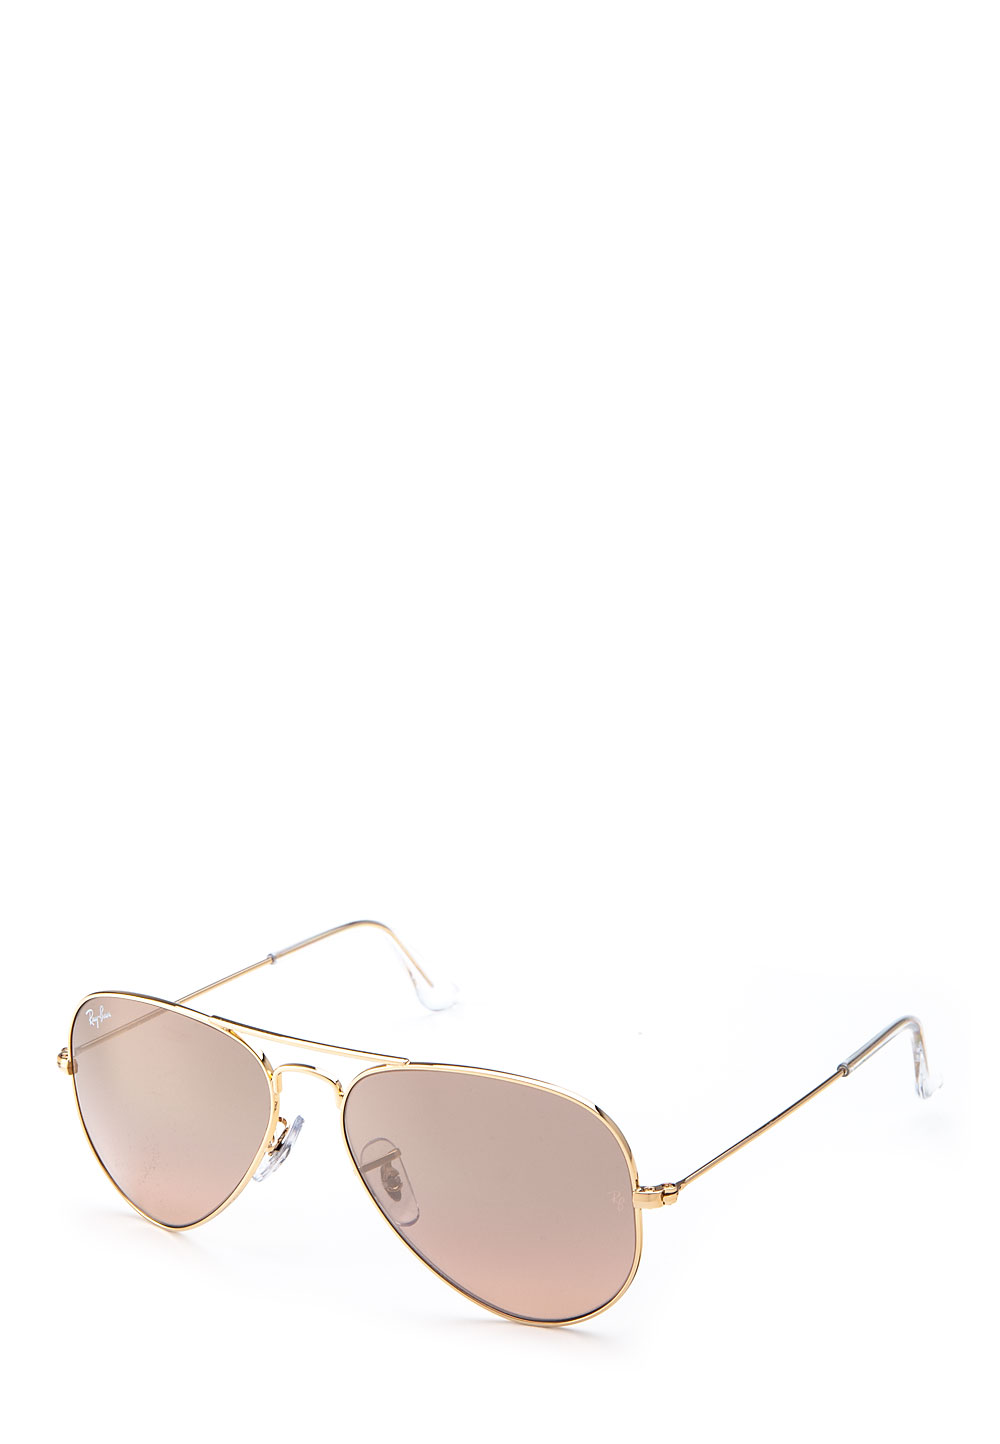 Sonnenbrille Aviator M, UV 400, golden